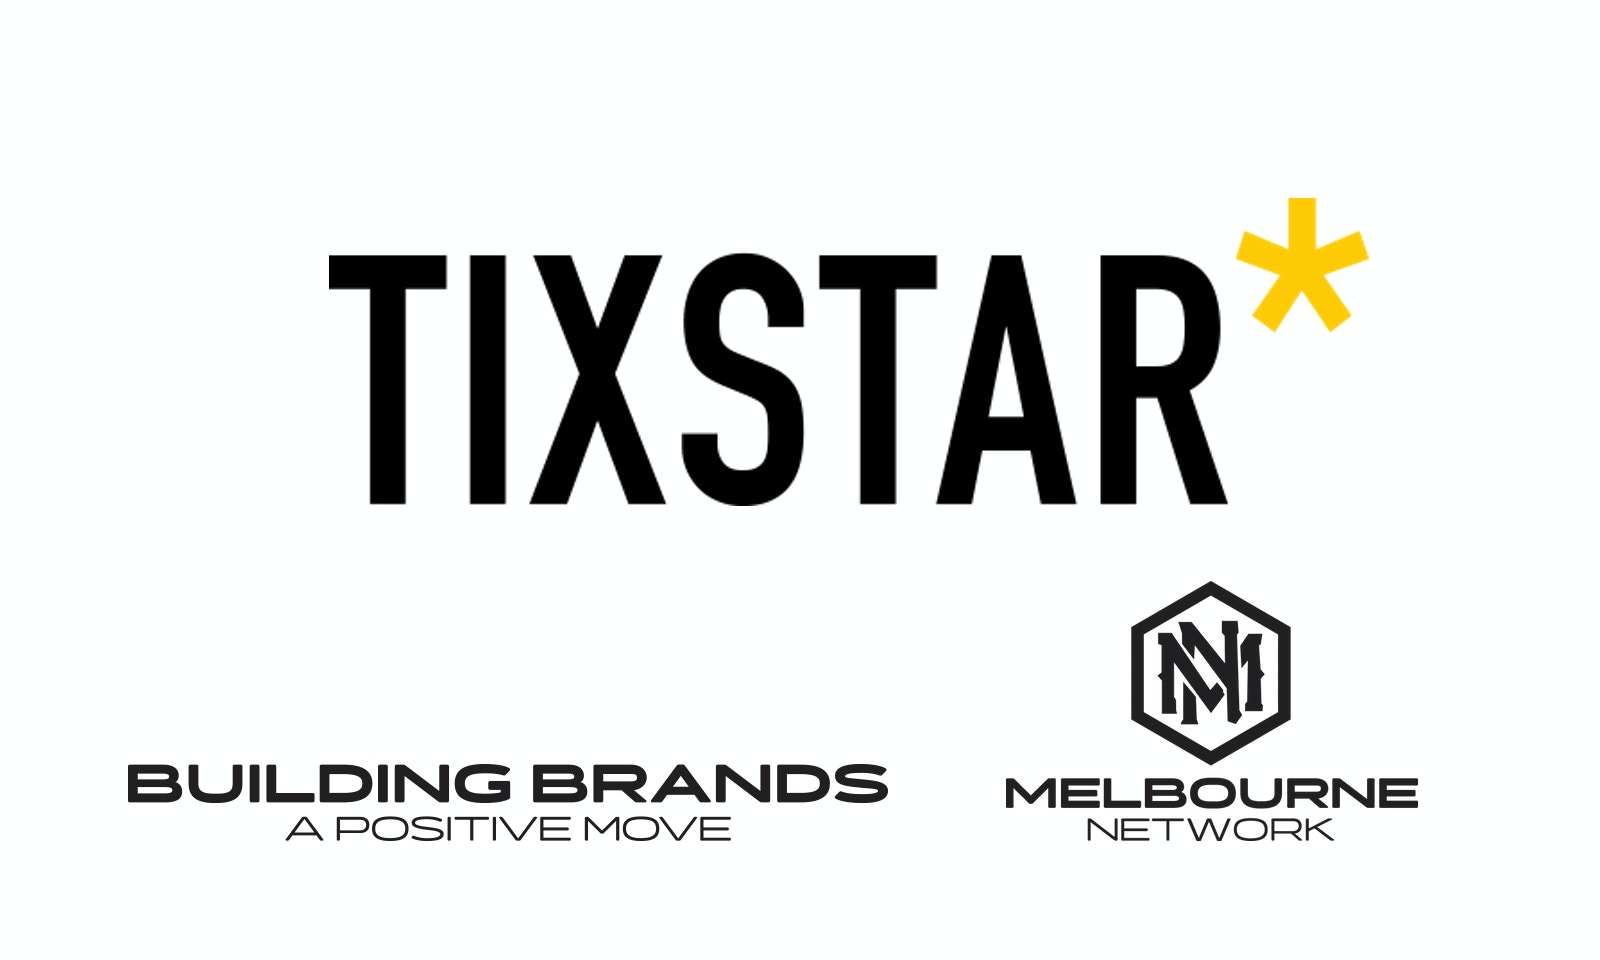 The Melbourne Network and A Positive Move align with TIXSTAR